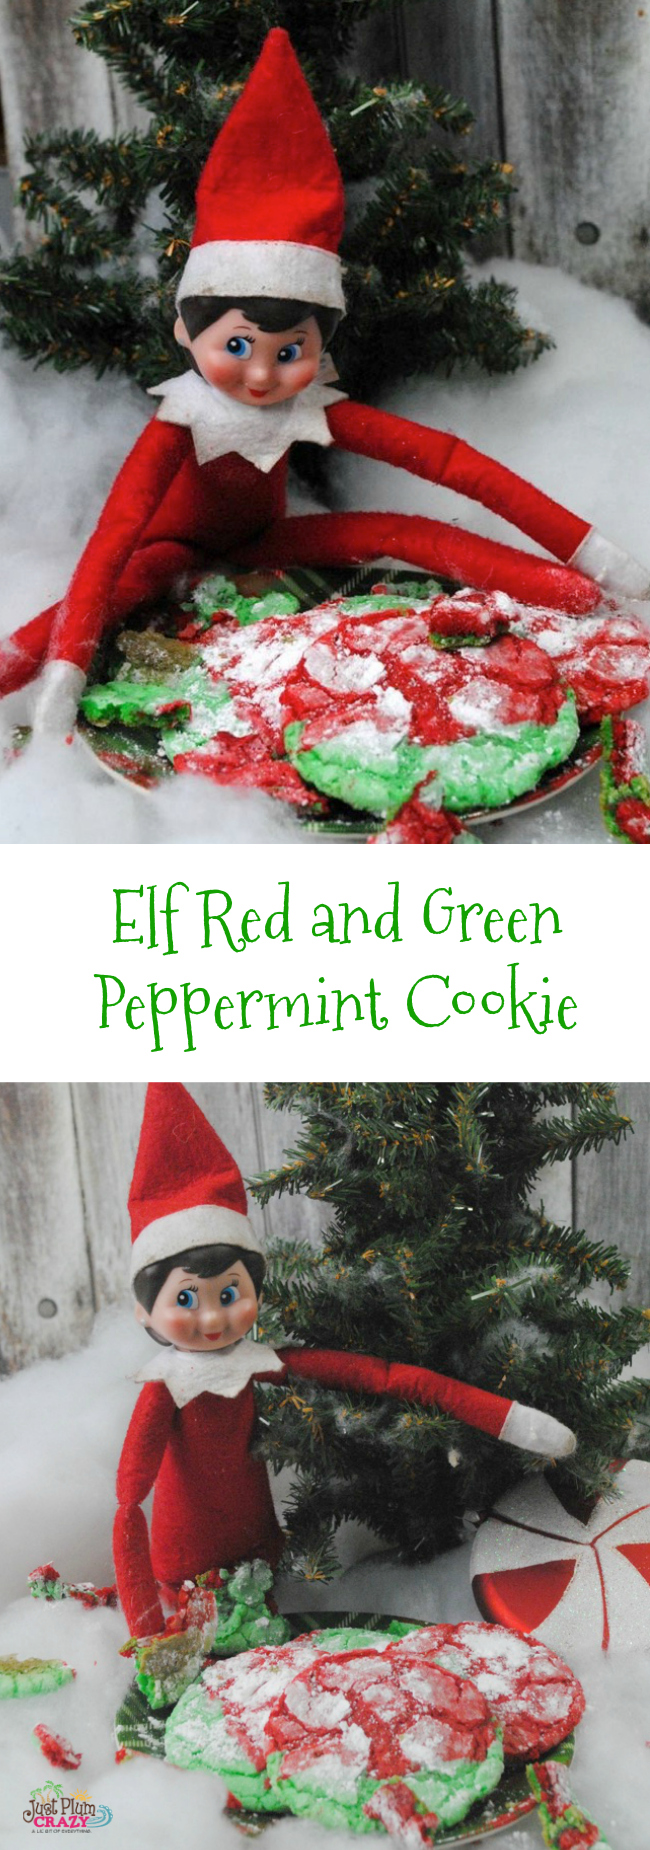 With Christmas being only a little over a week away, we are sharing some of our favorite Elf recipes with an Elf Red and Green Peppermint Cookie recipe.